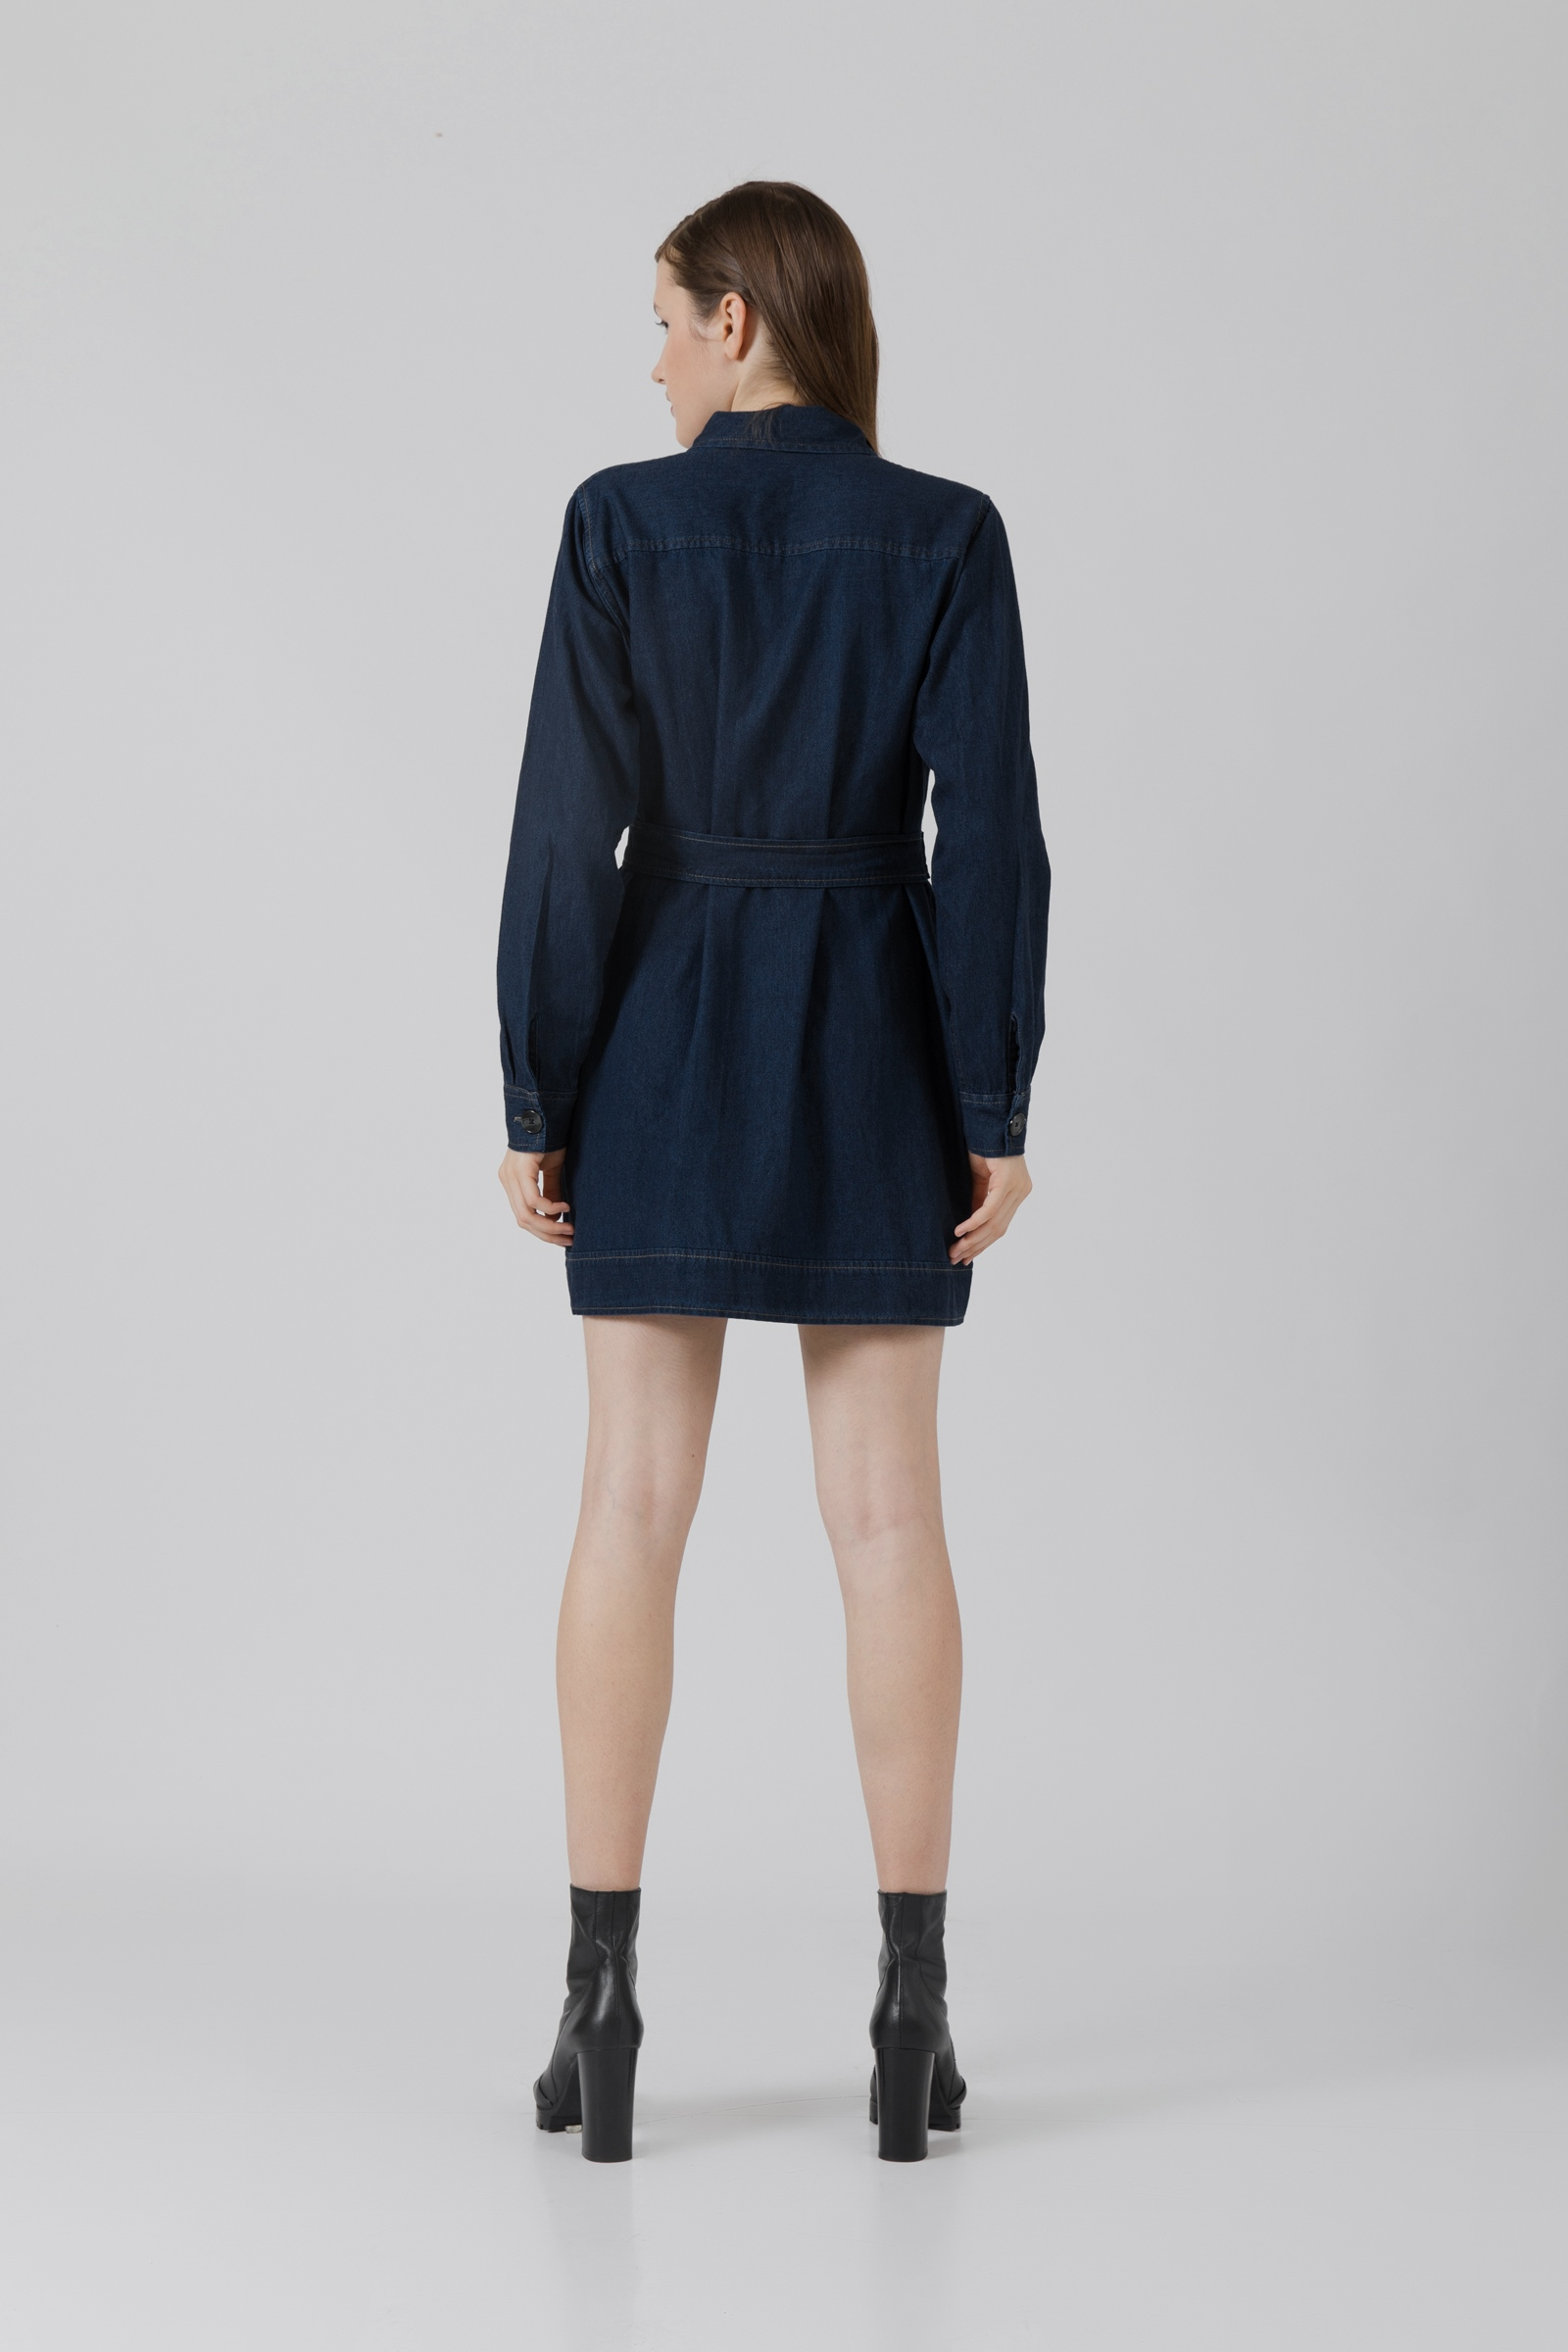 Picture of Joaquin Jeans Dress